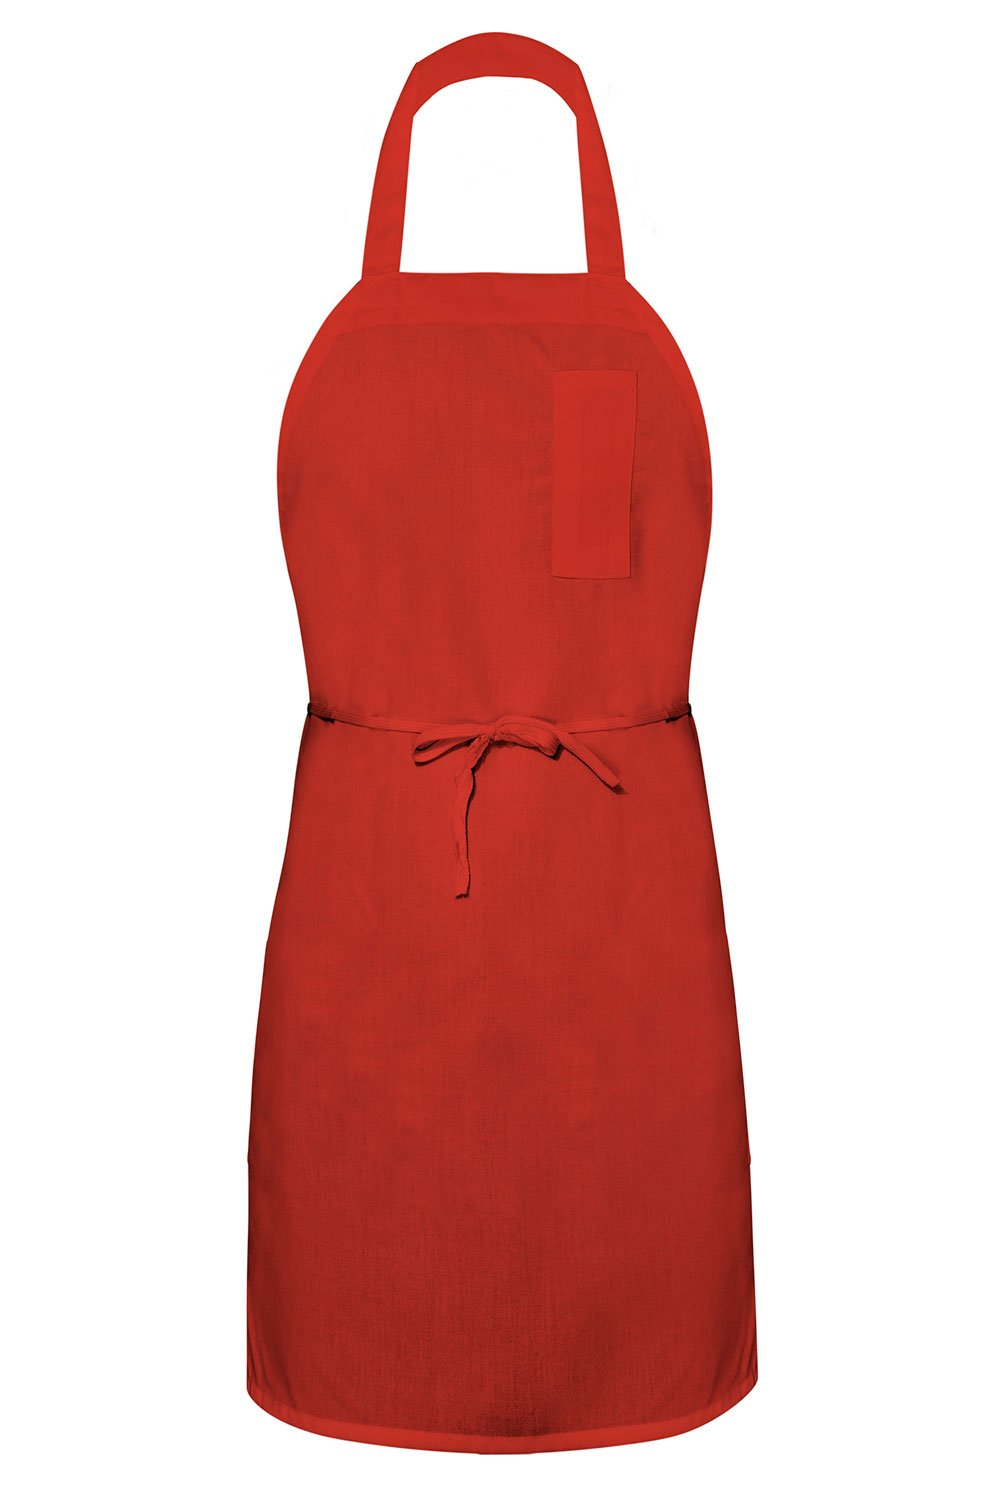 Red Bib Apron (1 Pencil Pocket)